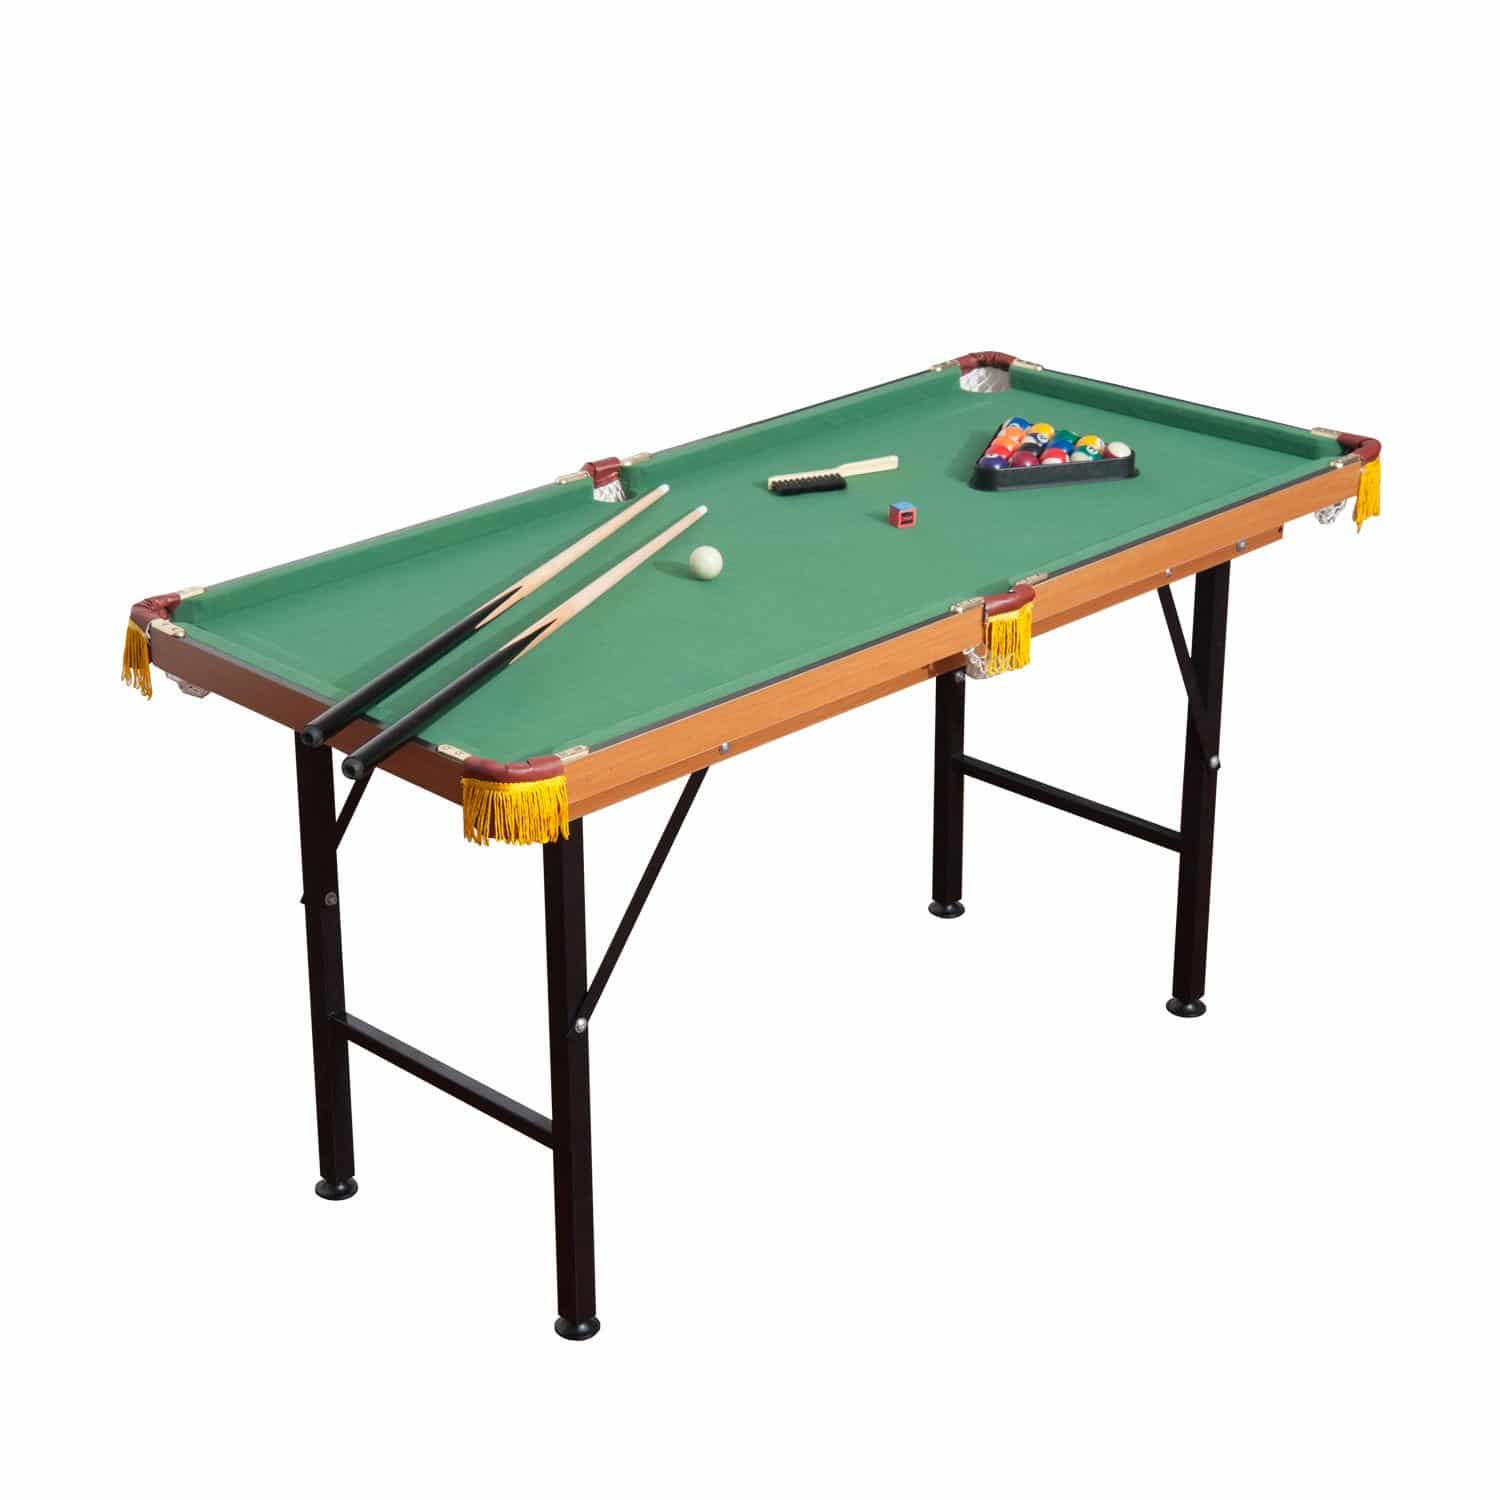 Picture of: 6 Best Portable Pool Tables Dec 2020 Reviews Buying Guide